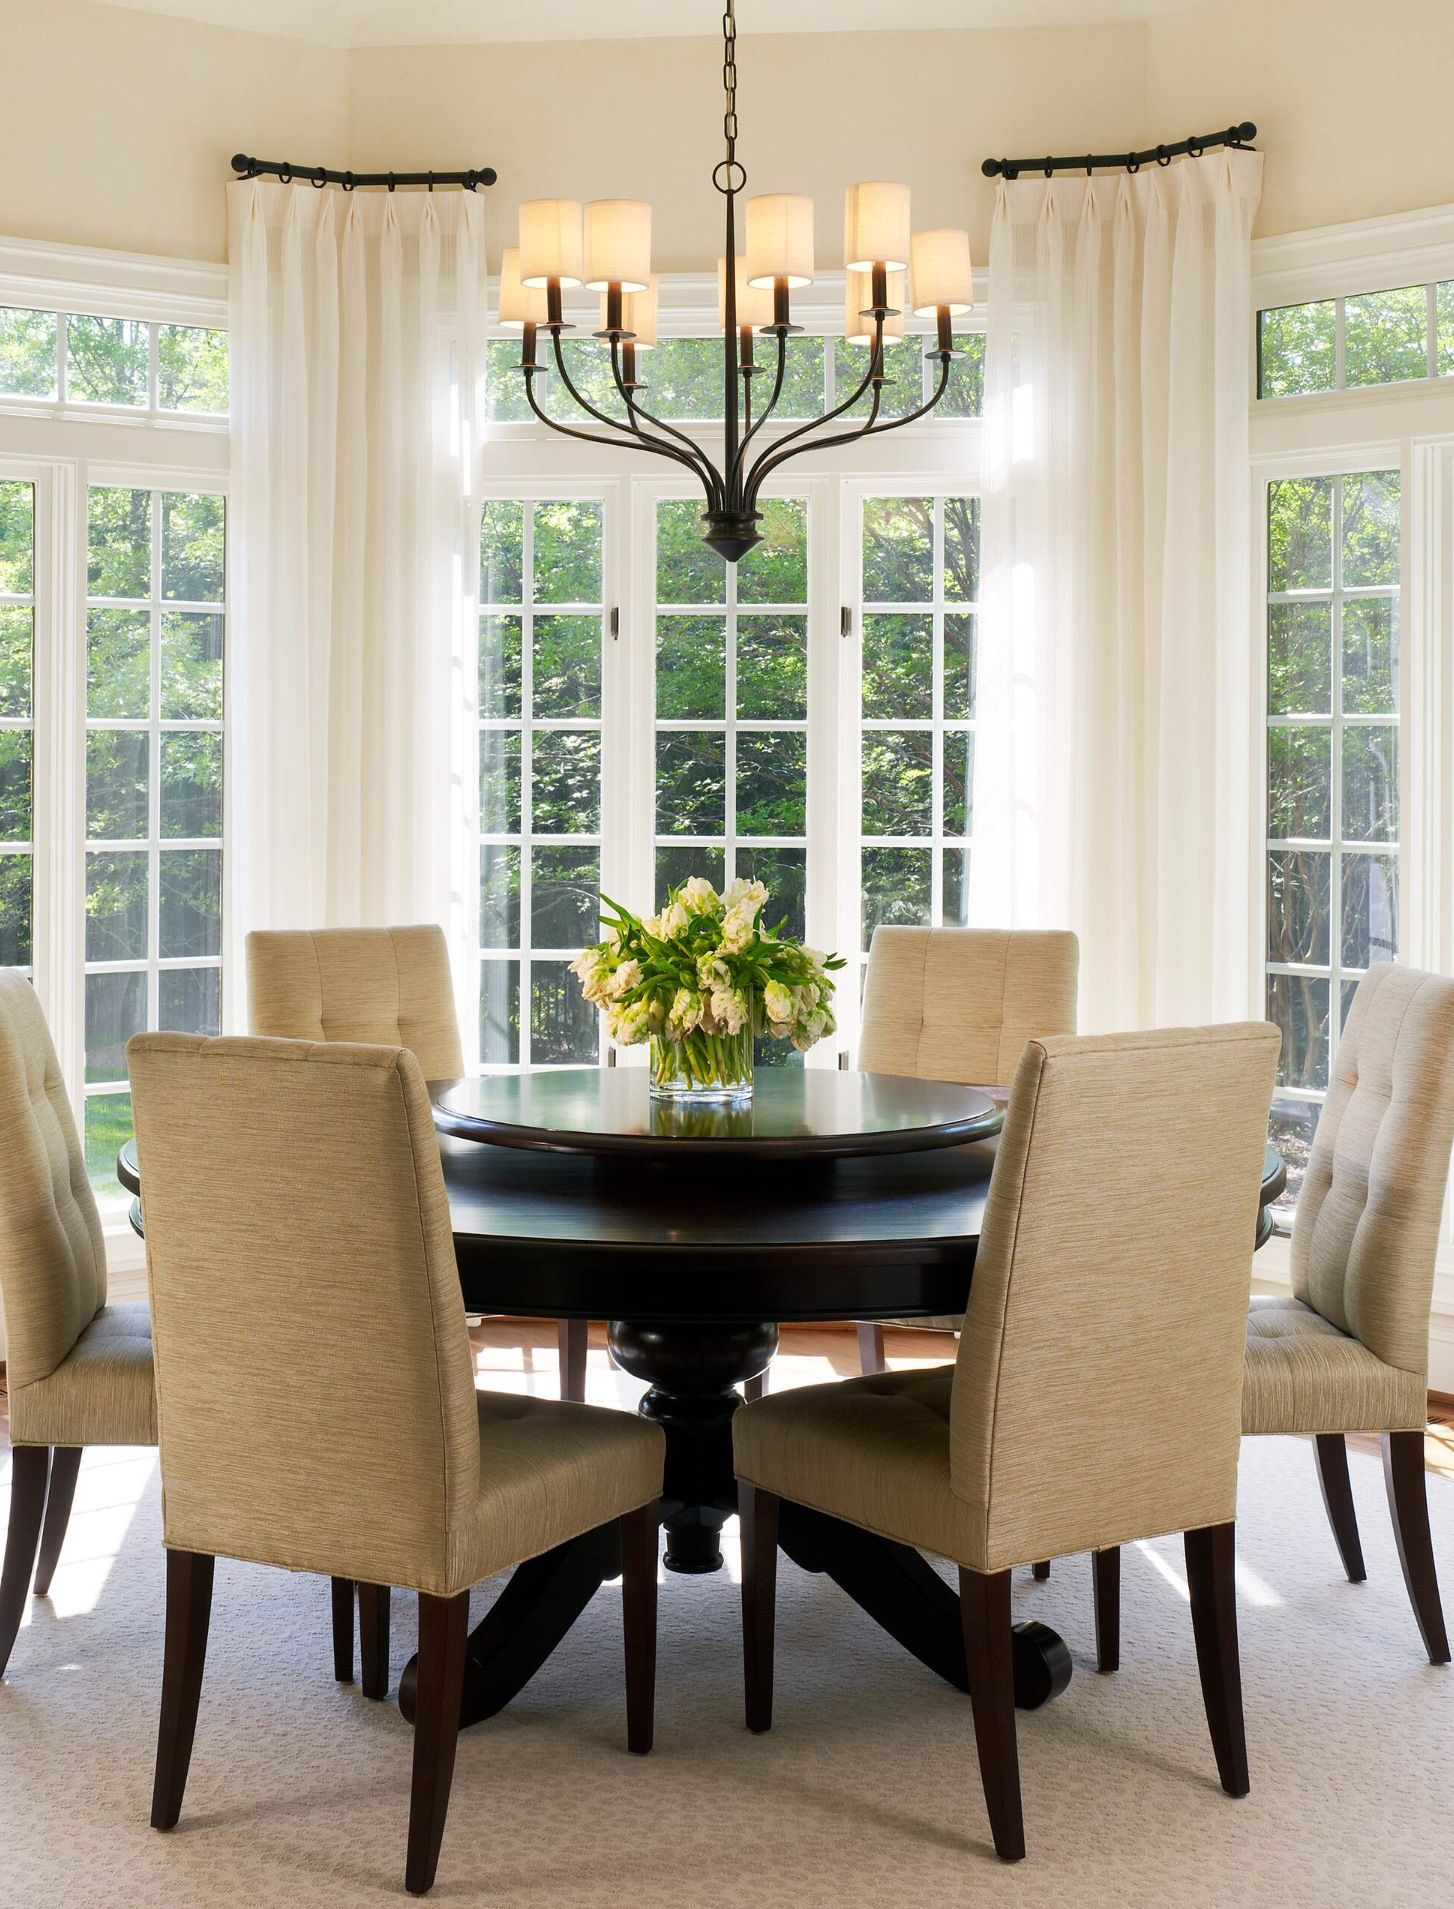 D Dining Room Drapes Table Chairs Area